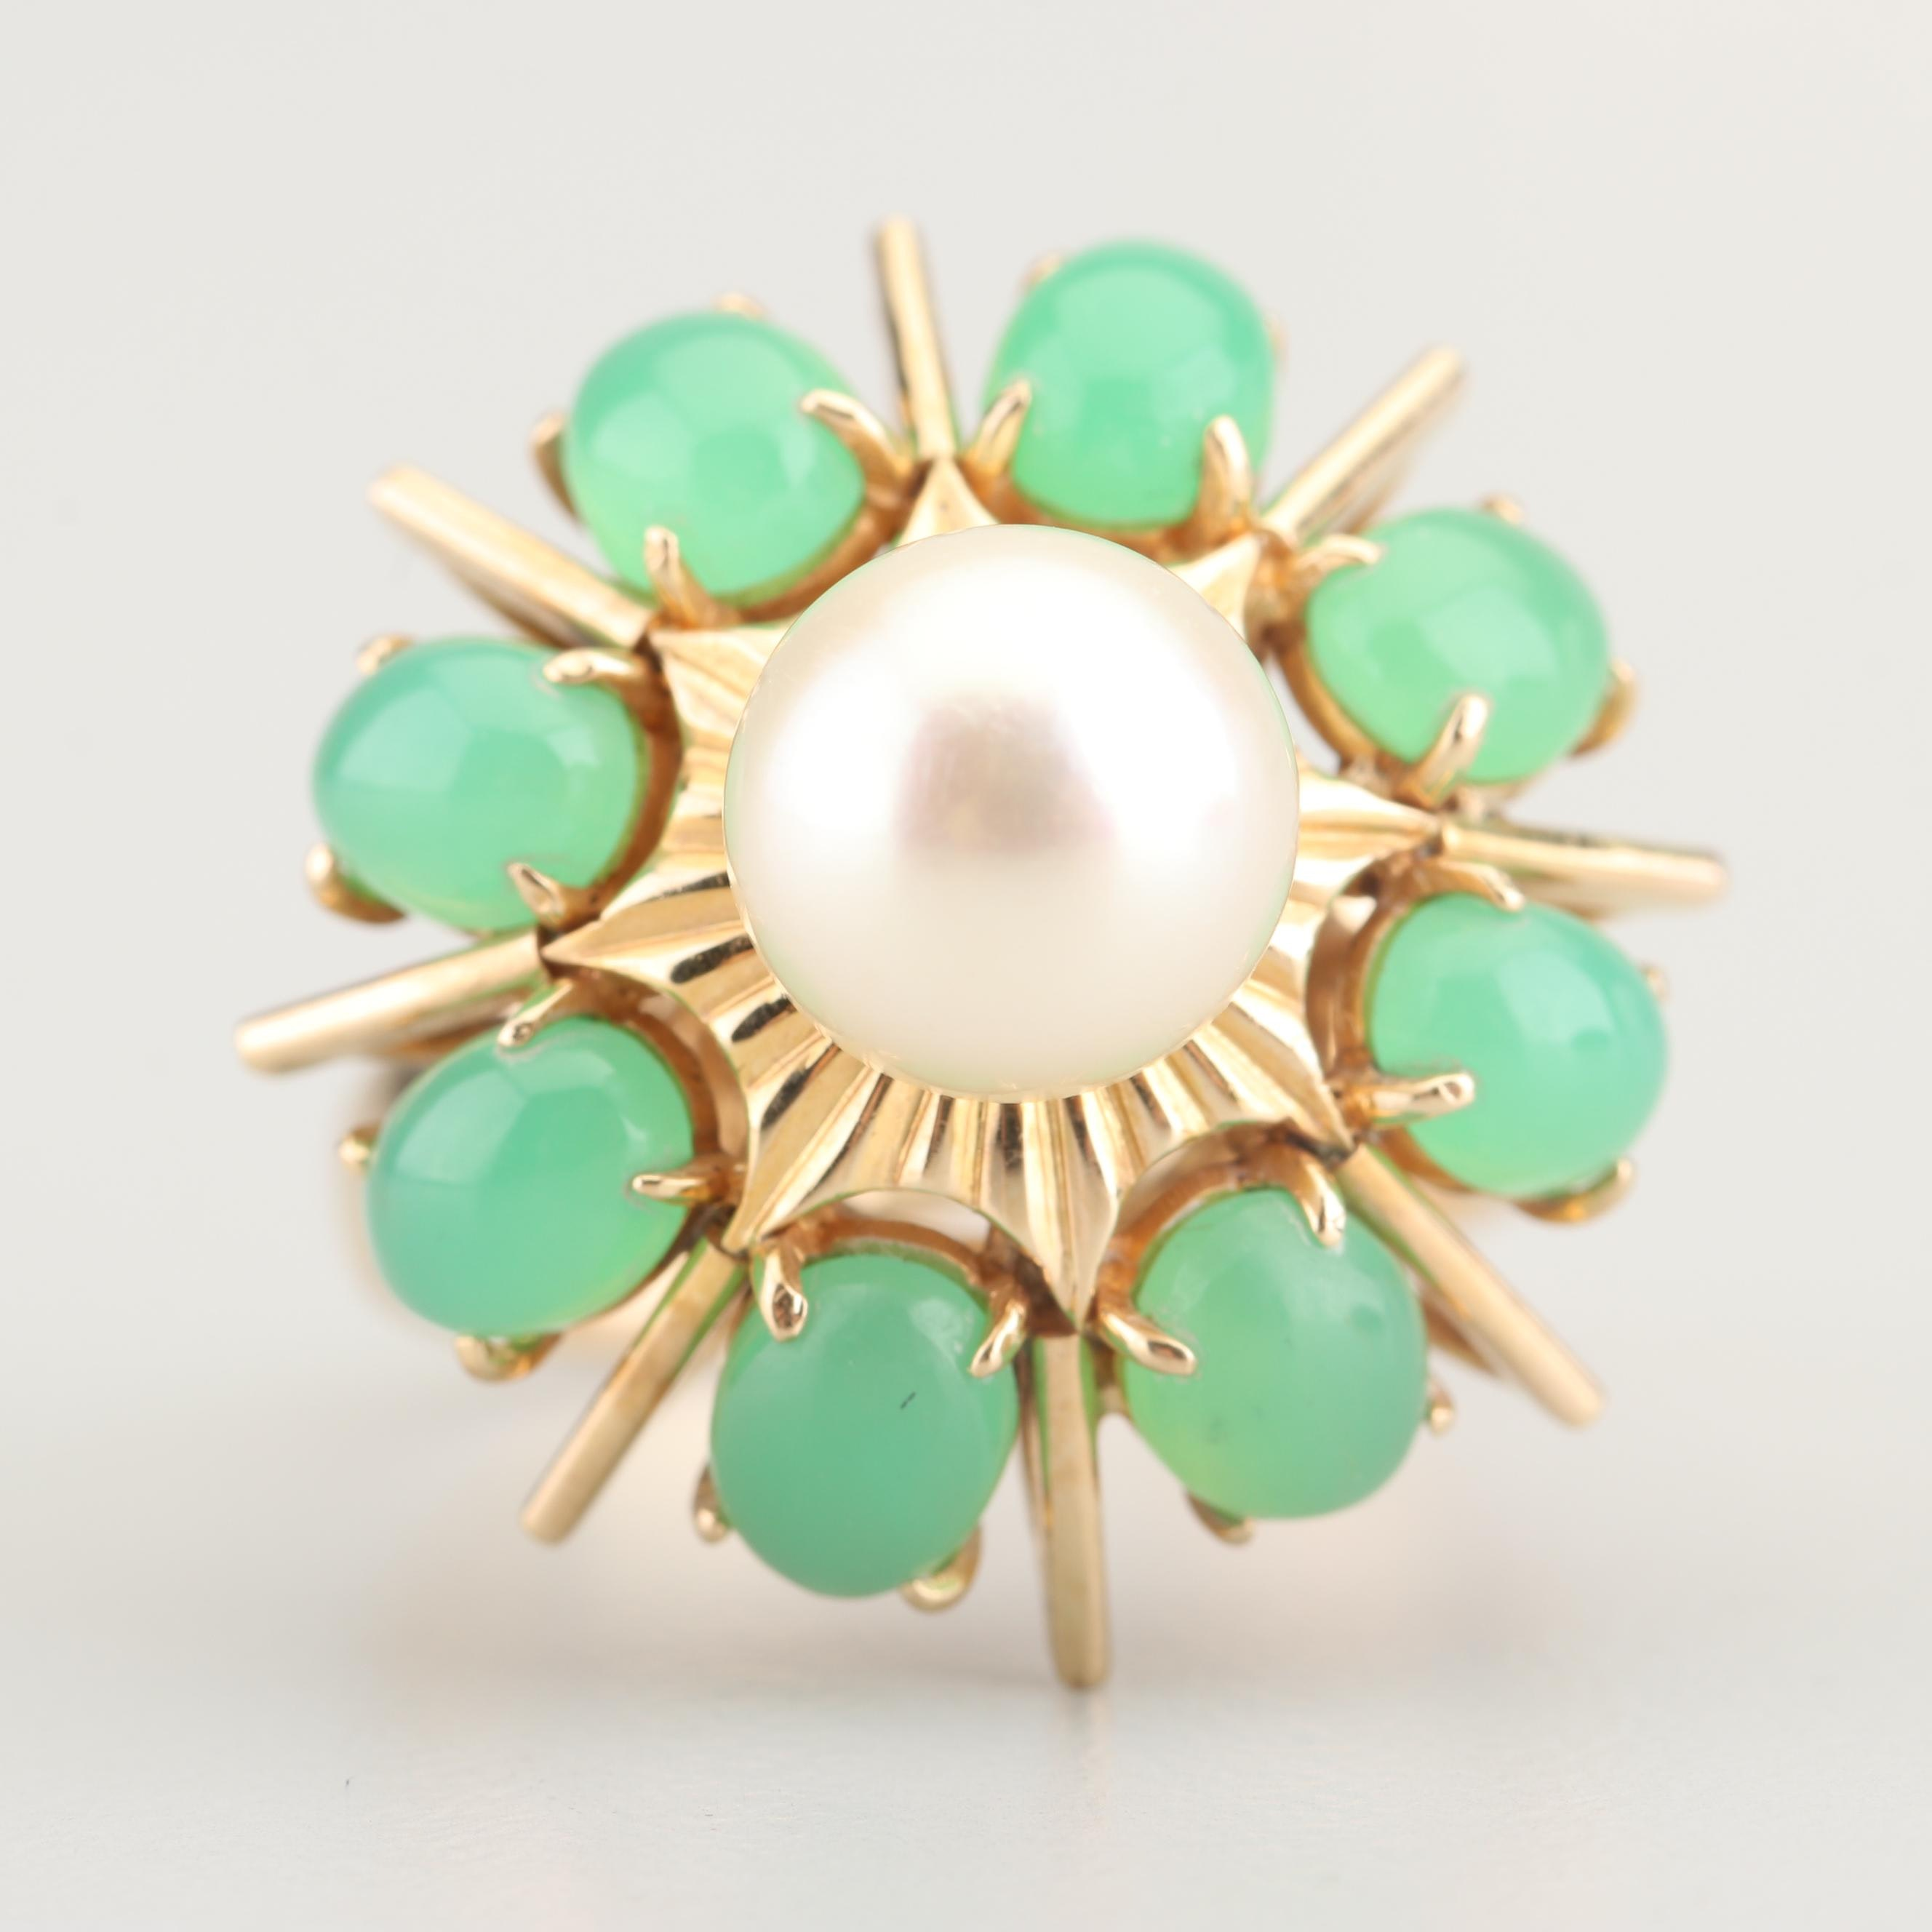 14K Yellow Gold Cultured Saltwater Pearl and Chrysoprase Ring